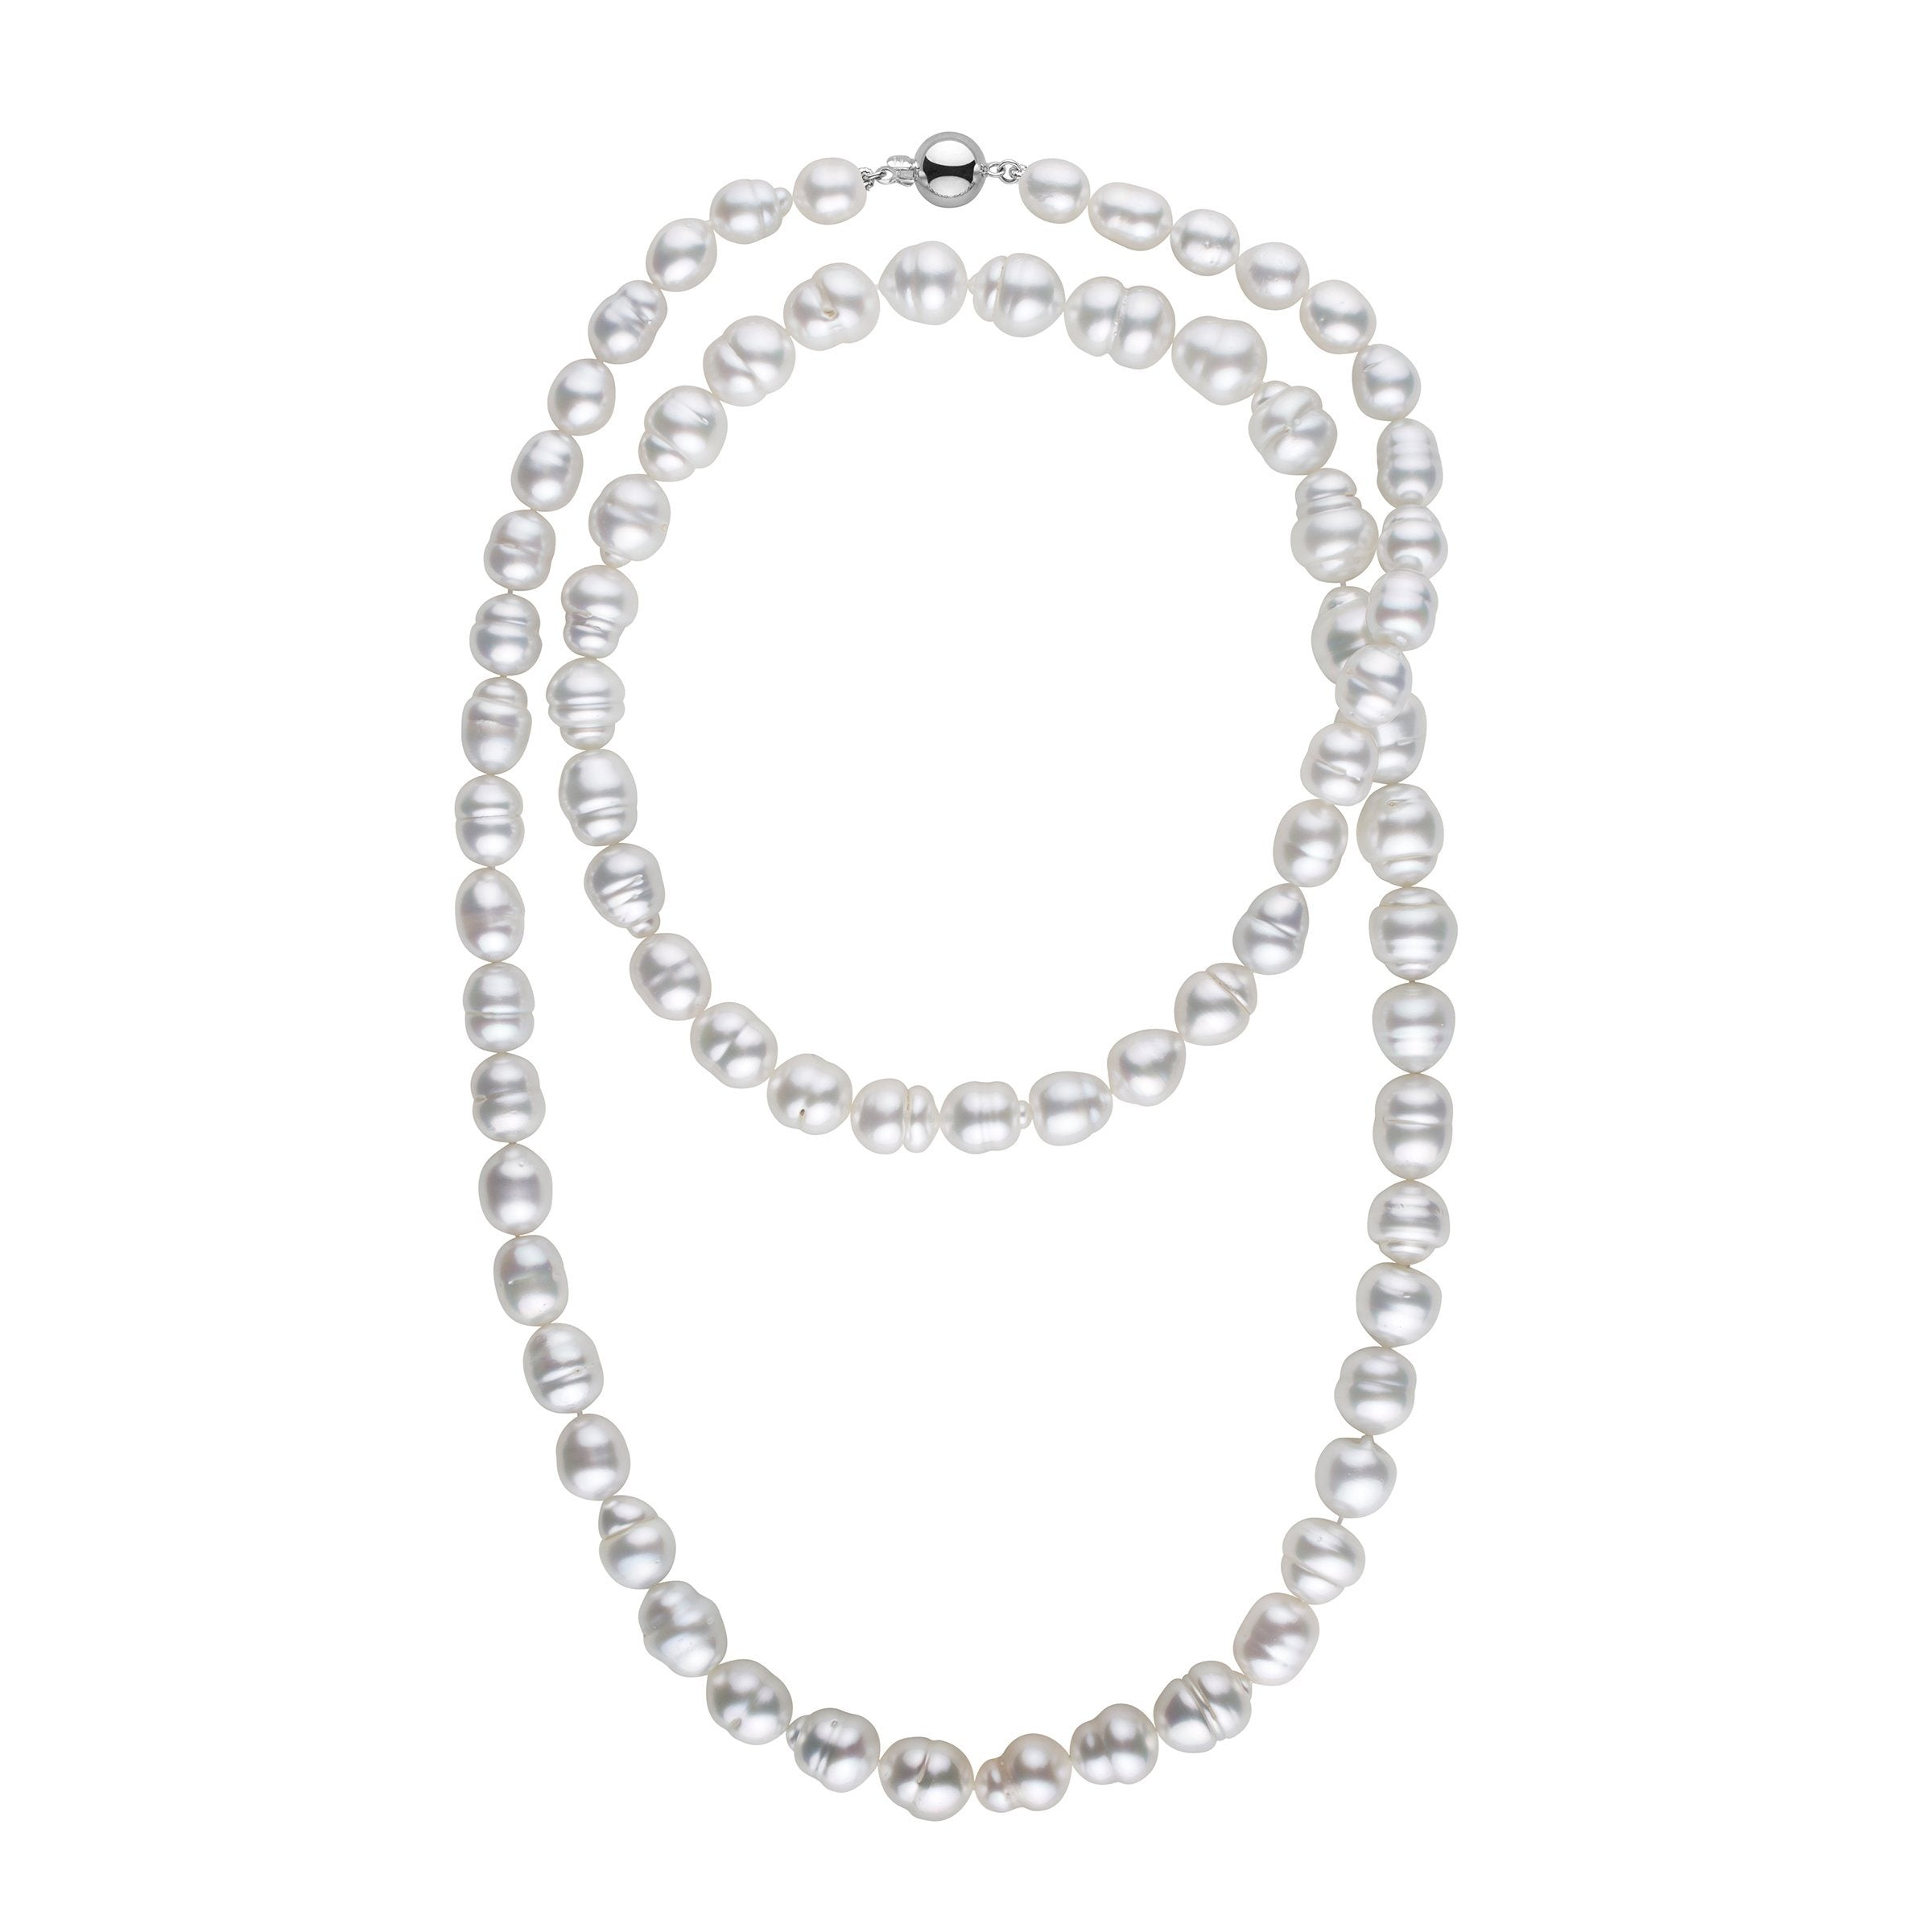 8.3-11.8 mm AA+/AAA White South Sea Baroque Necklace - 36 Inches